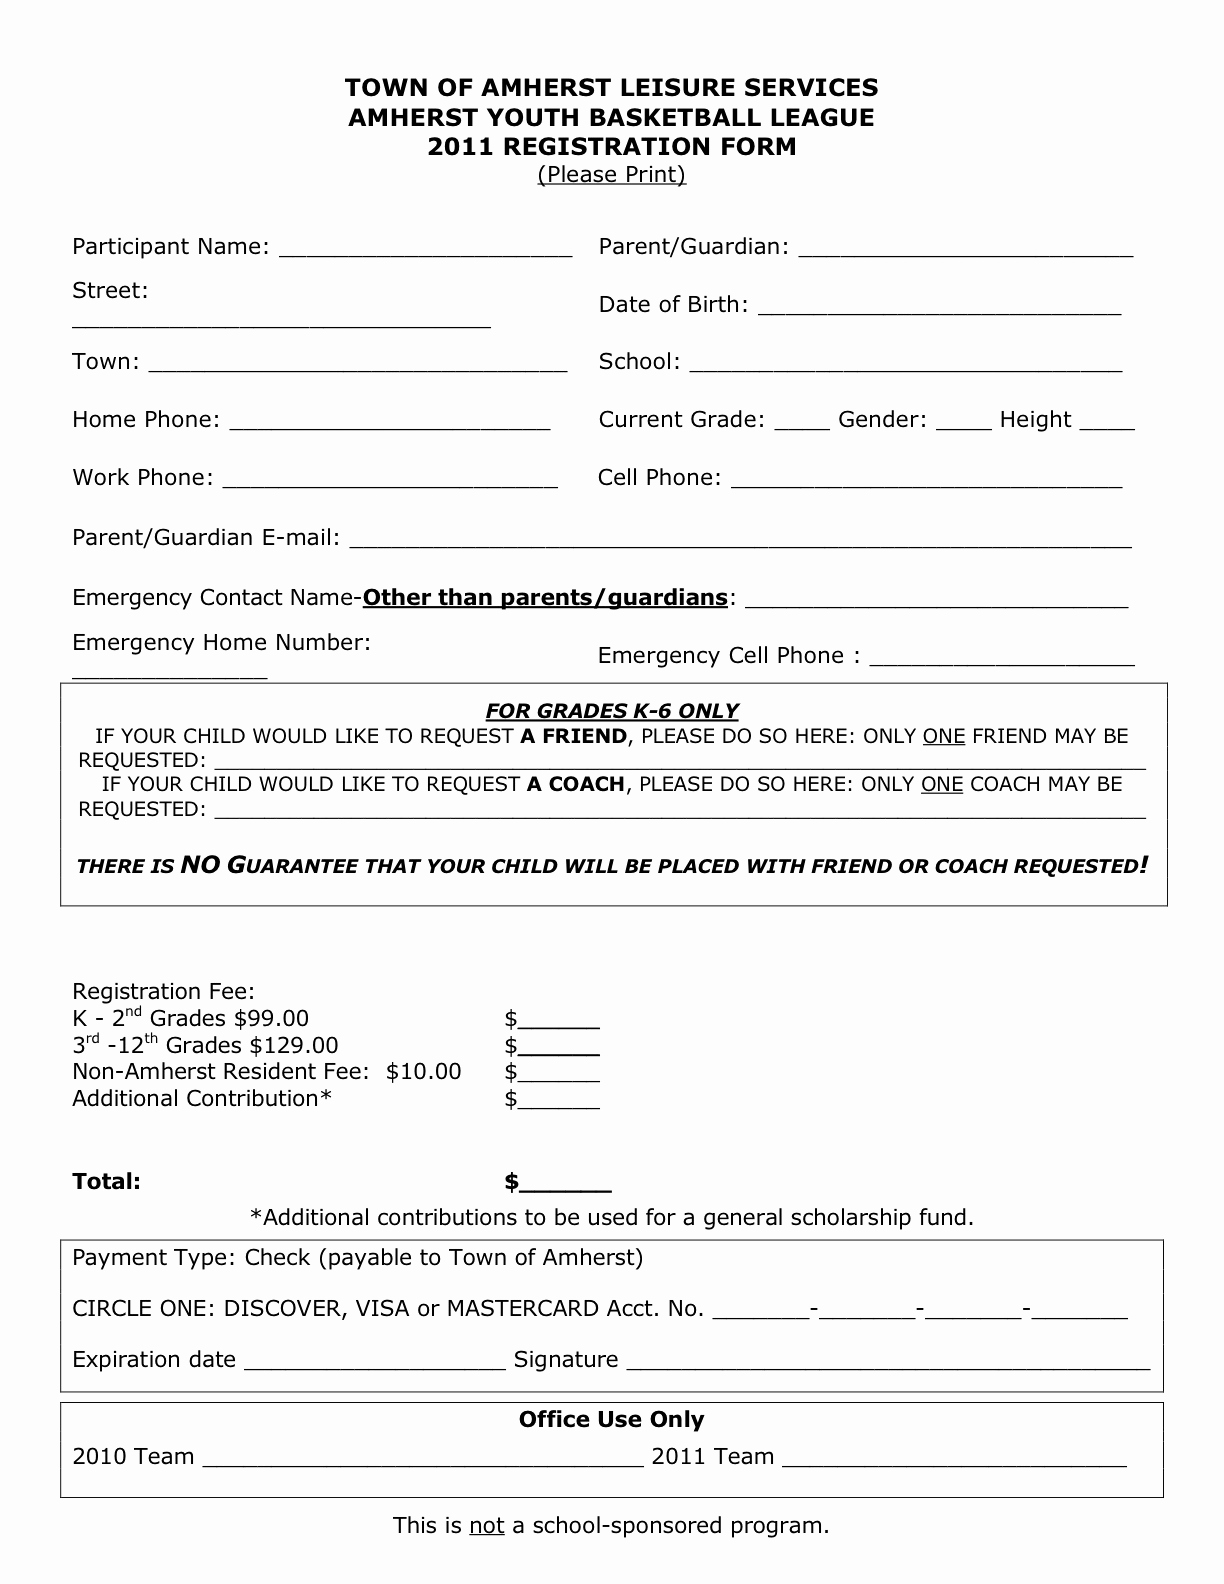 Free Registration forms Template Lovely Application form Registration form Template HTML Free